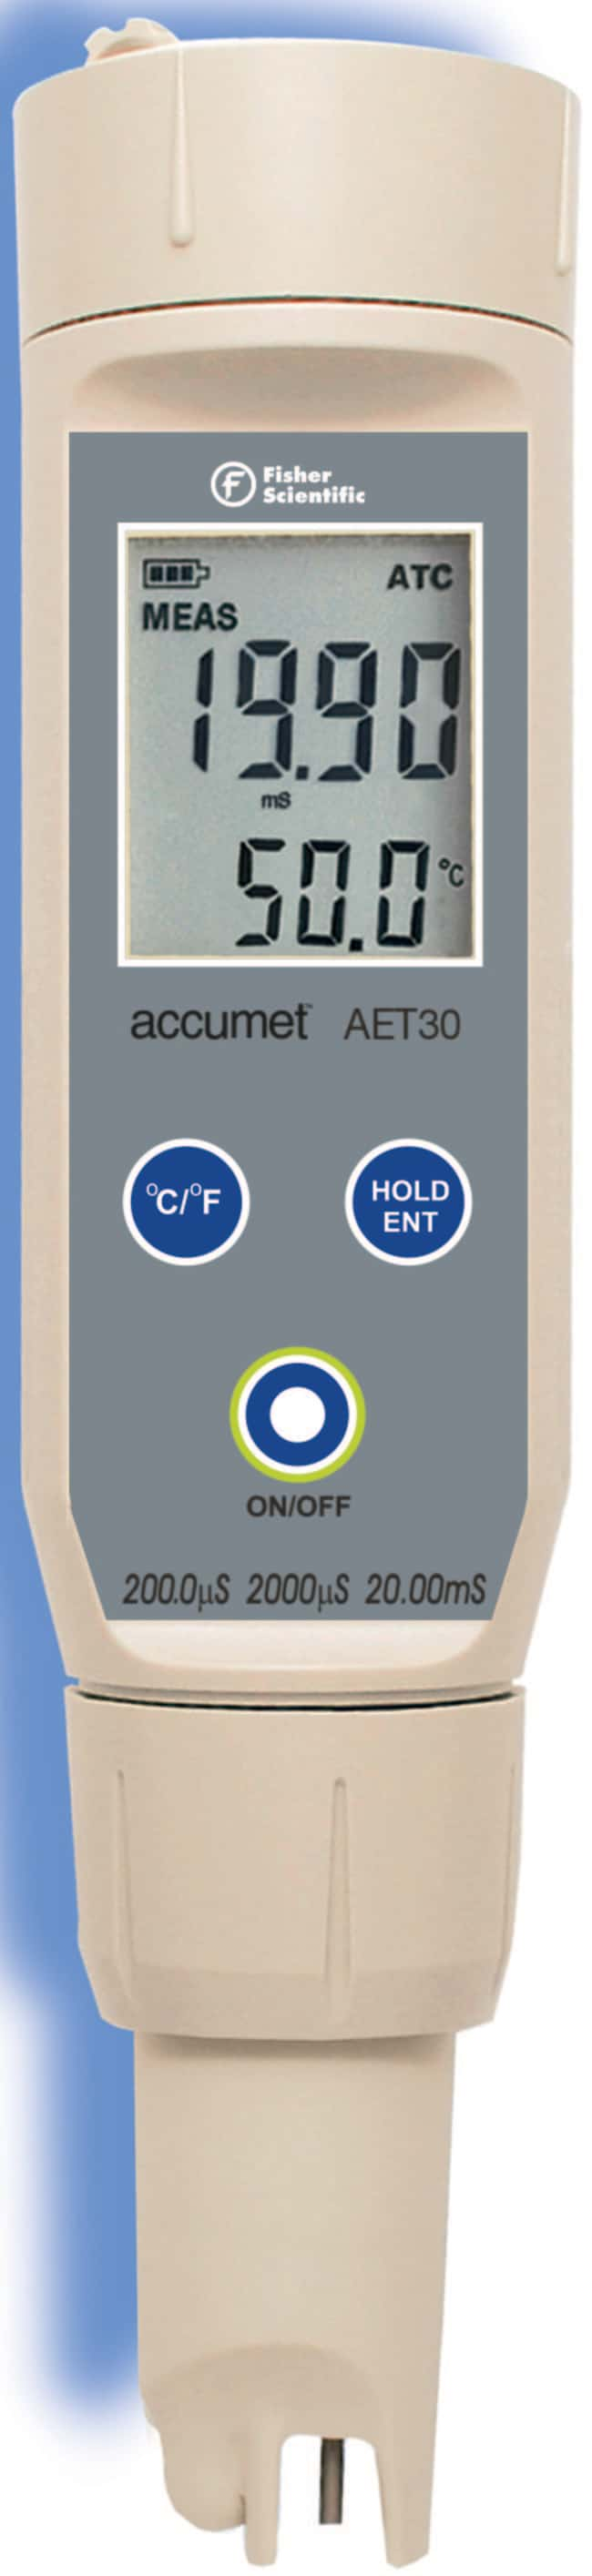 accumet accumet™ AET30 Conductivity Tester